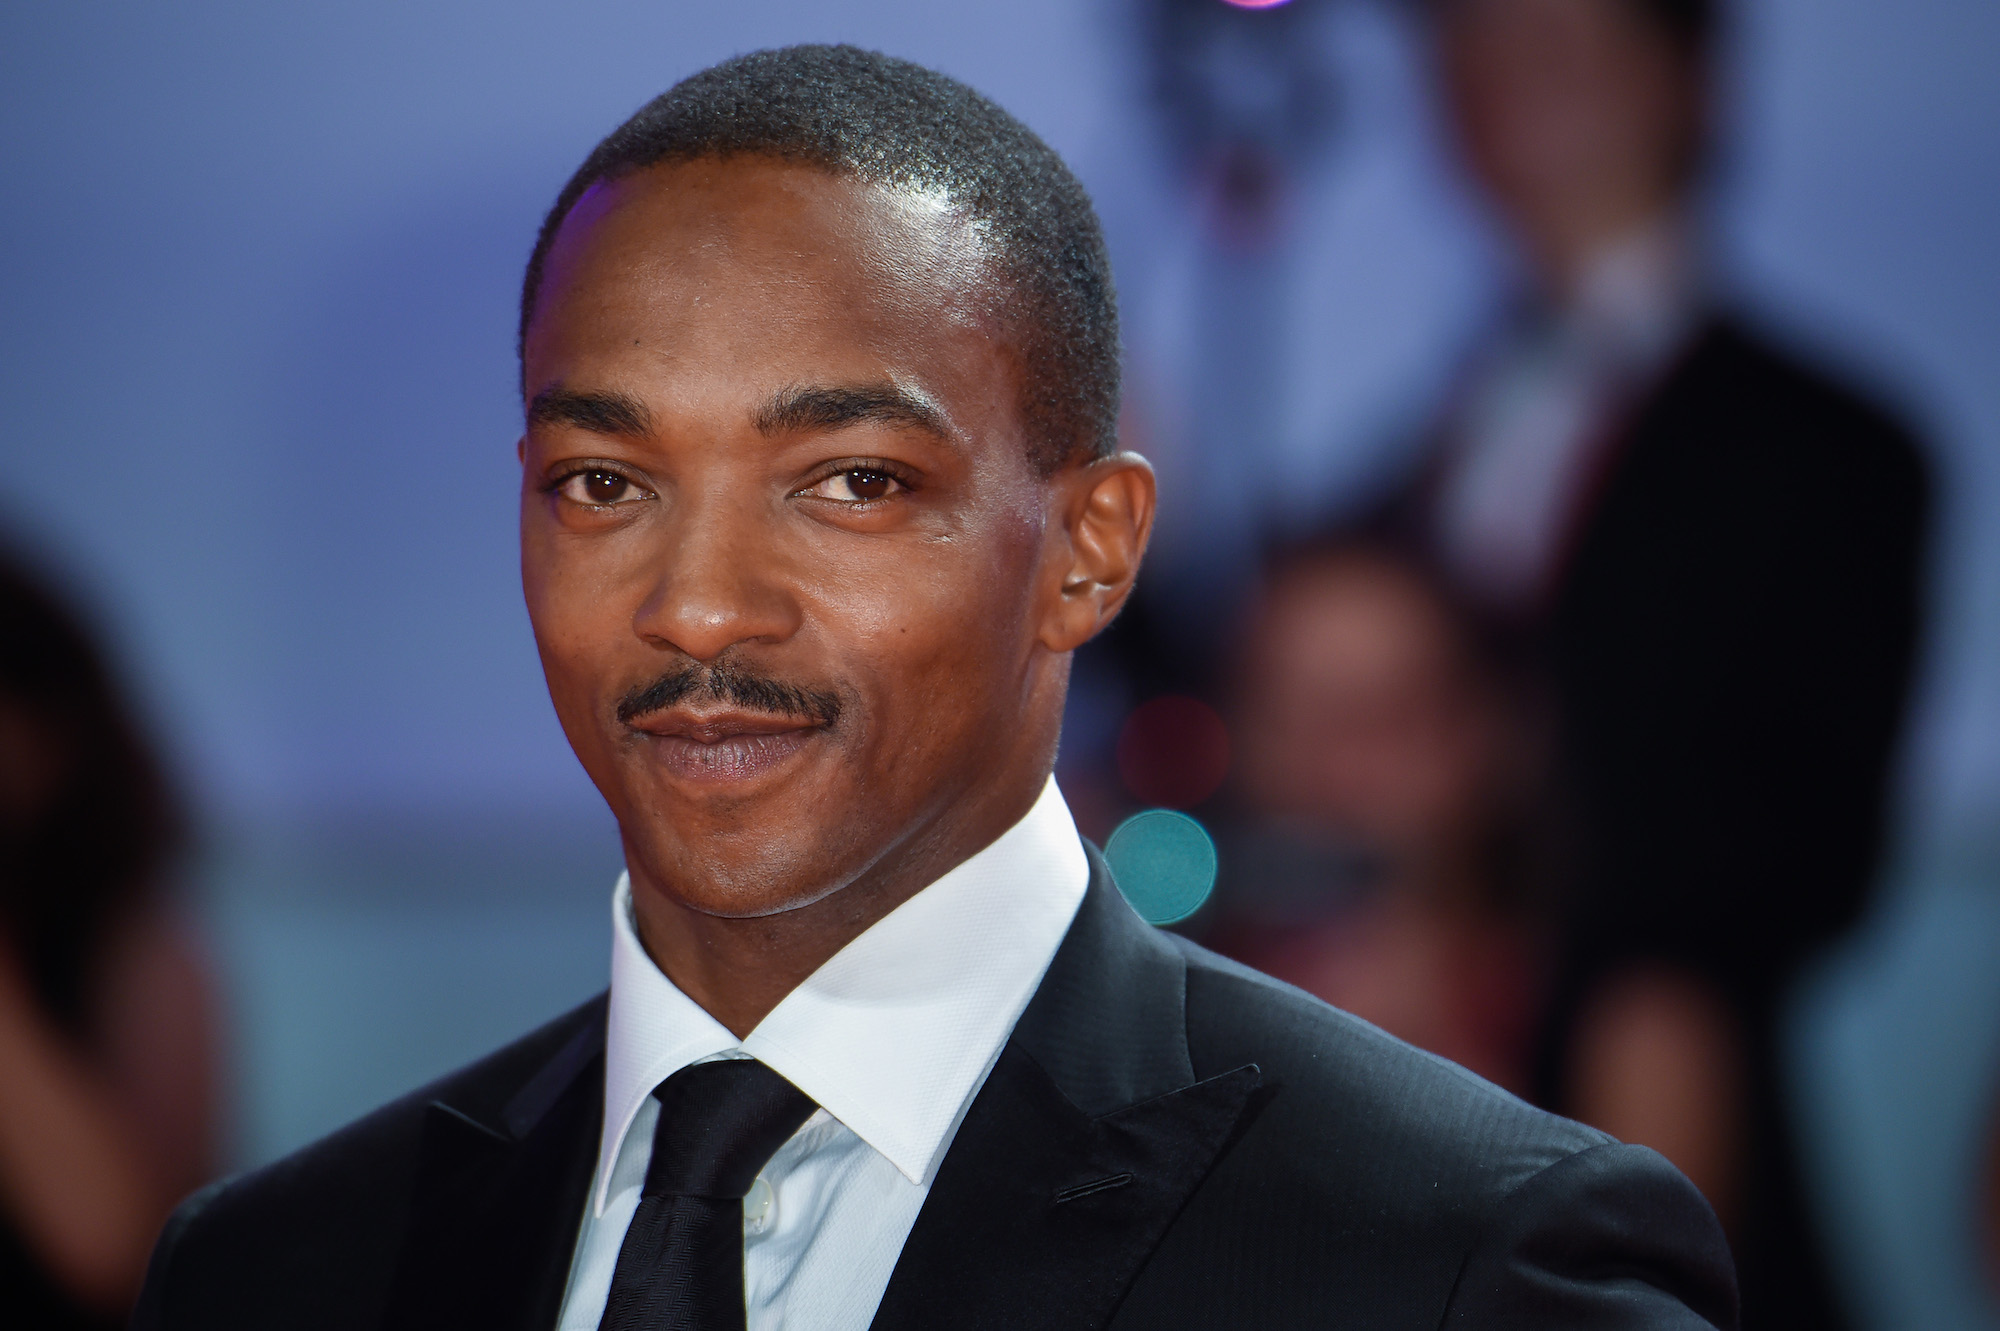 anthony-mackie-comments-on-the-theory-that-hes-the-new-captain-america-video